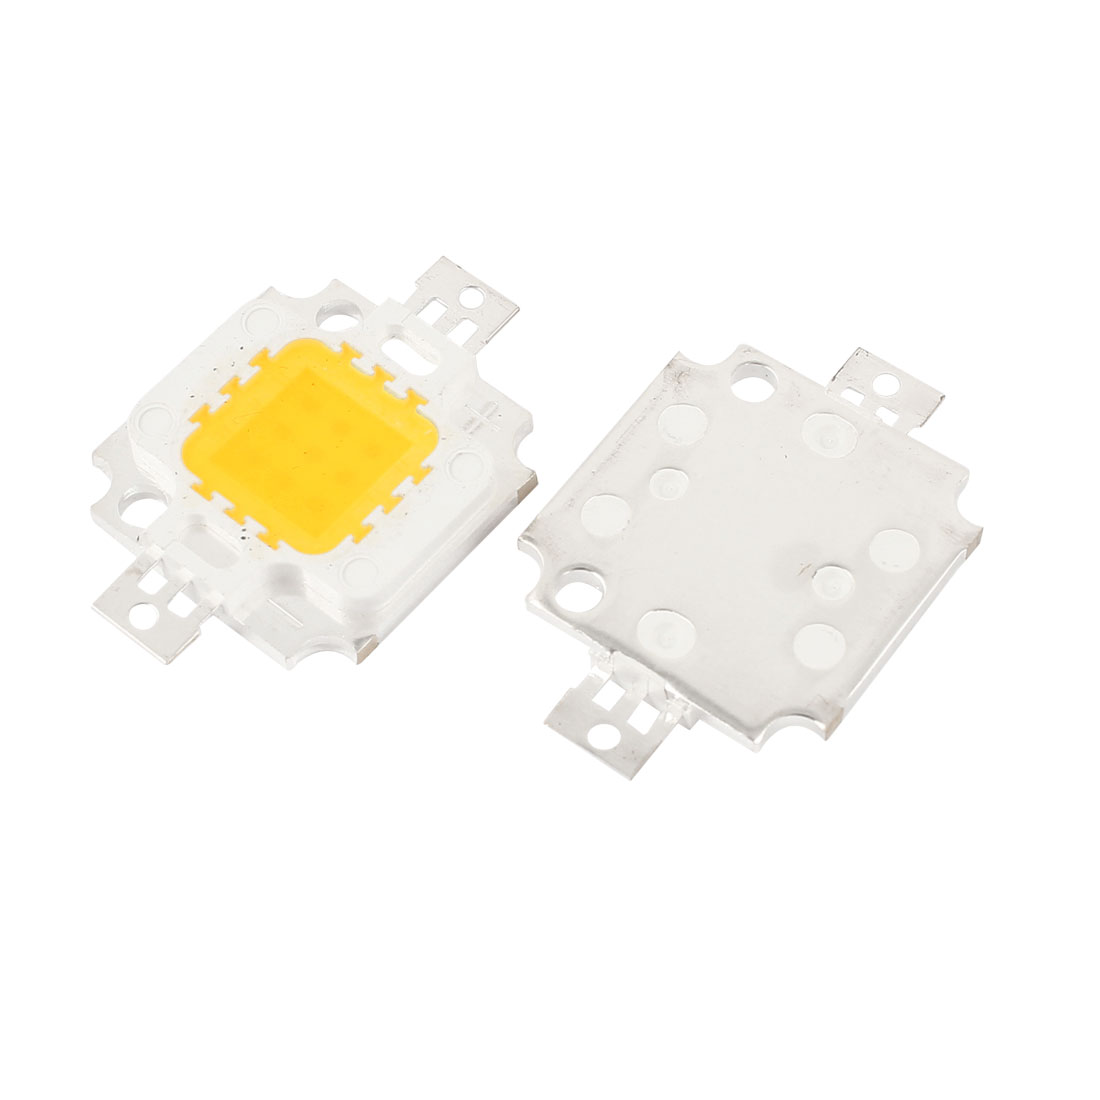 2pcs 10W Warm White Light High Power LED Lamp Emitter Metal Plate 850-900LM